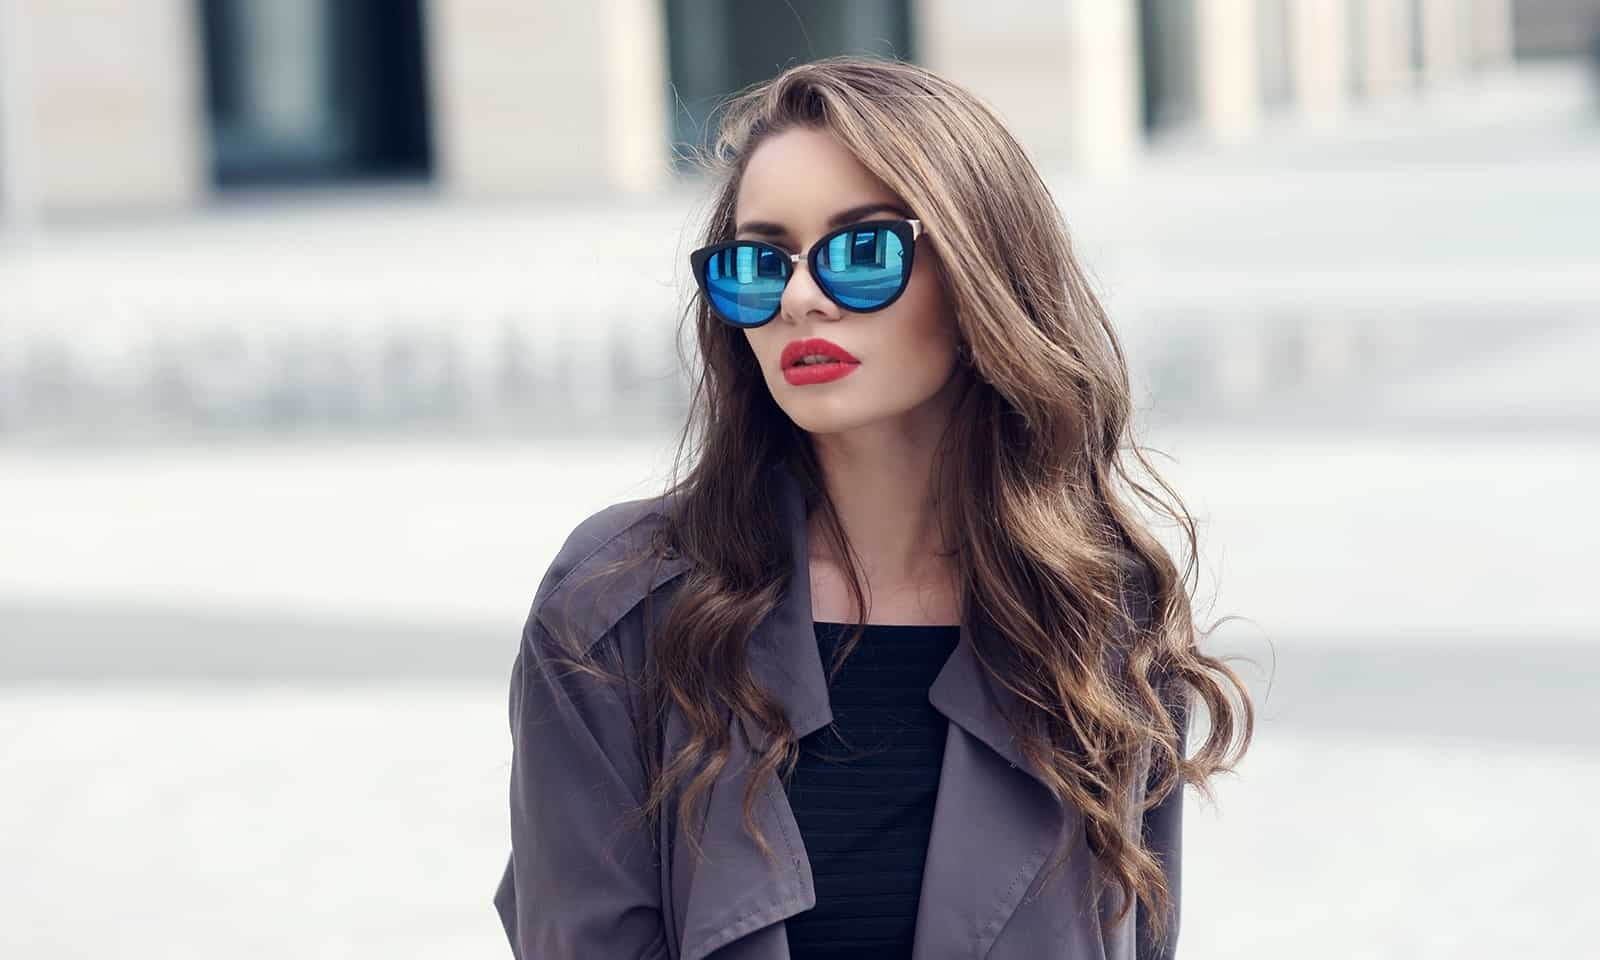 Sunglasses: How to Know What Looks Good